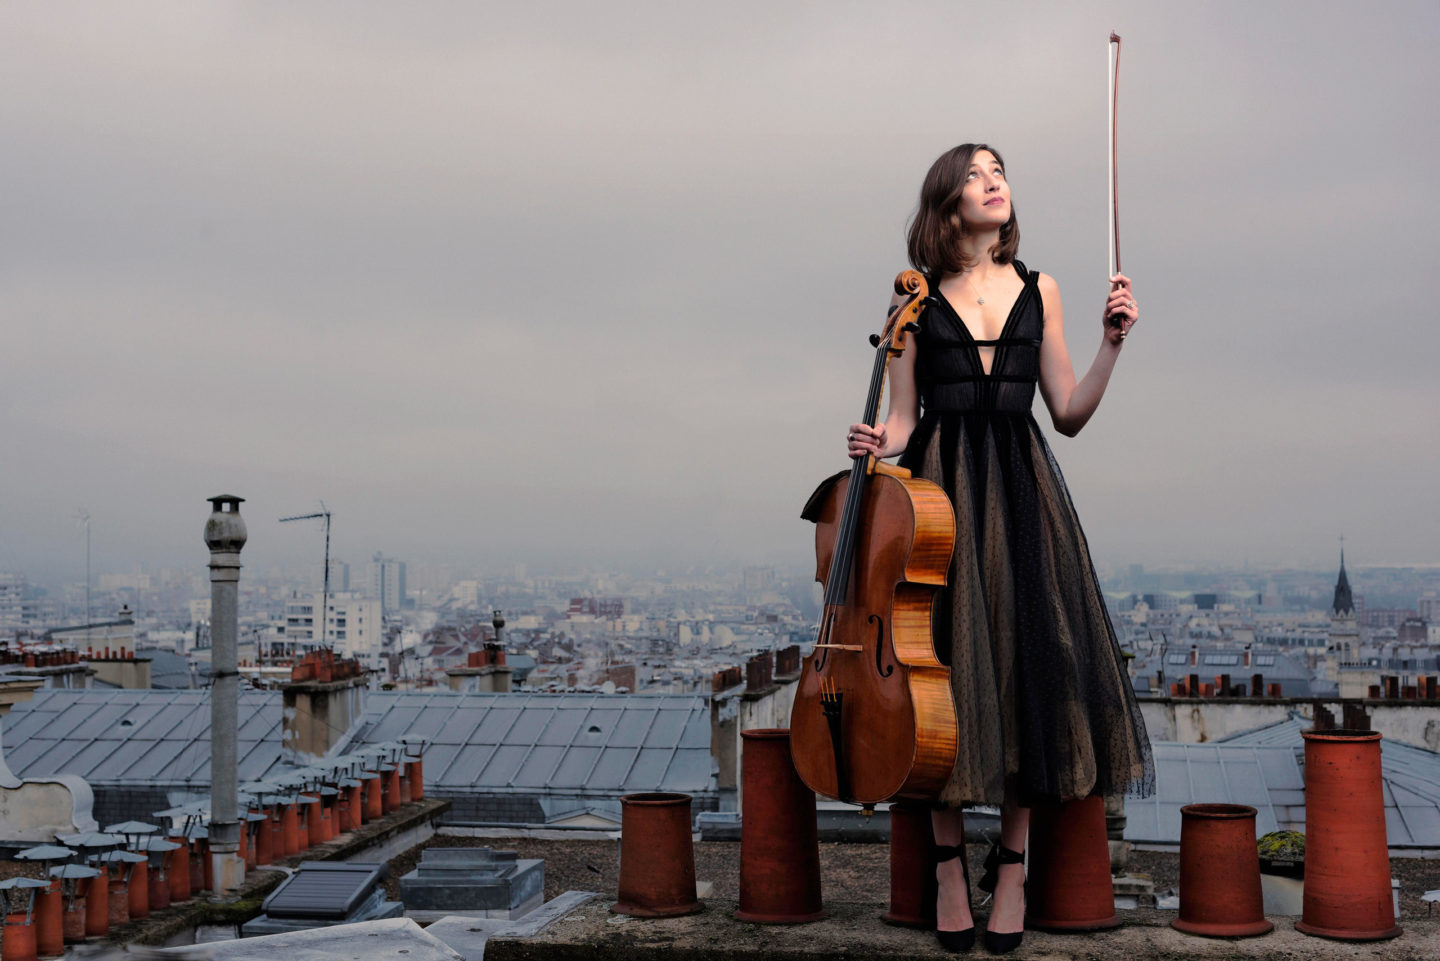 Camille Thomas the cello player on roof like Mary Poppin's by Franck Socha